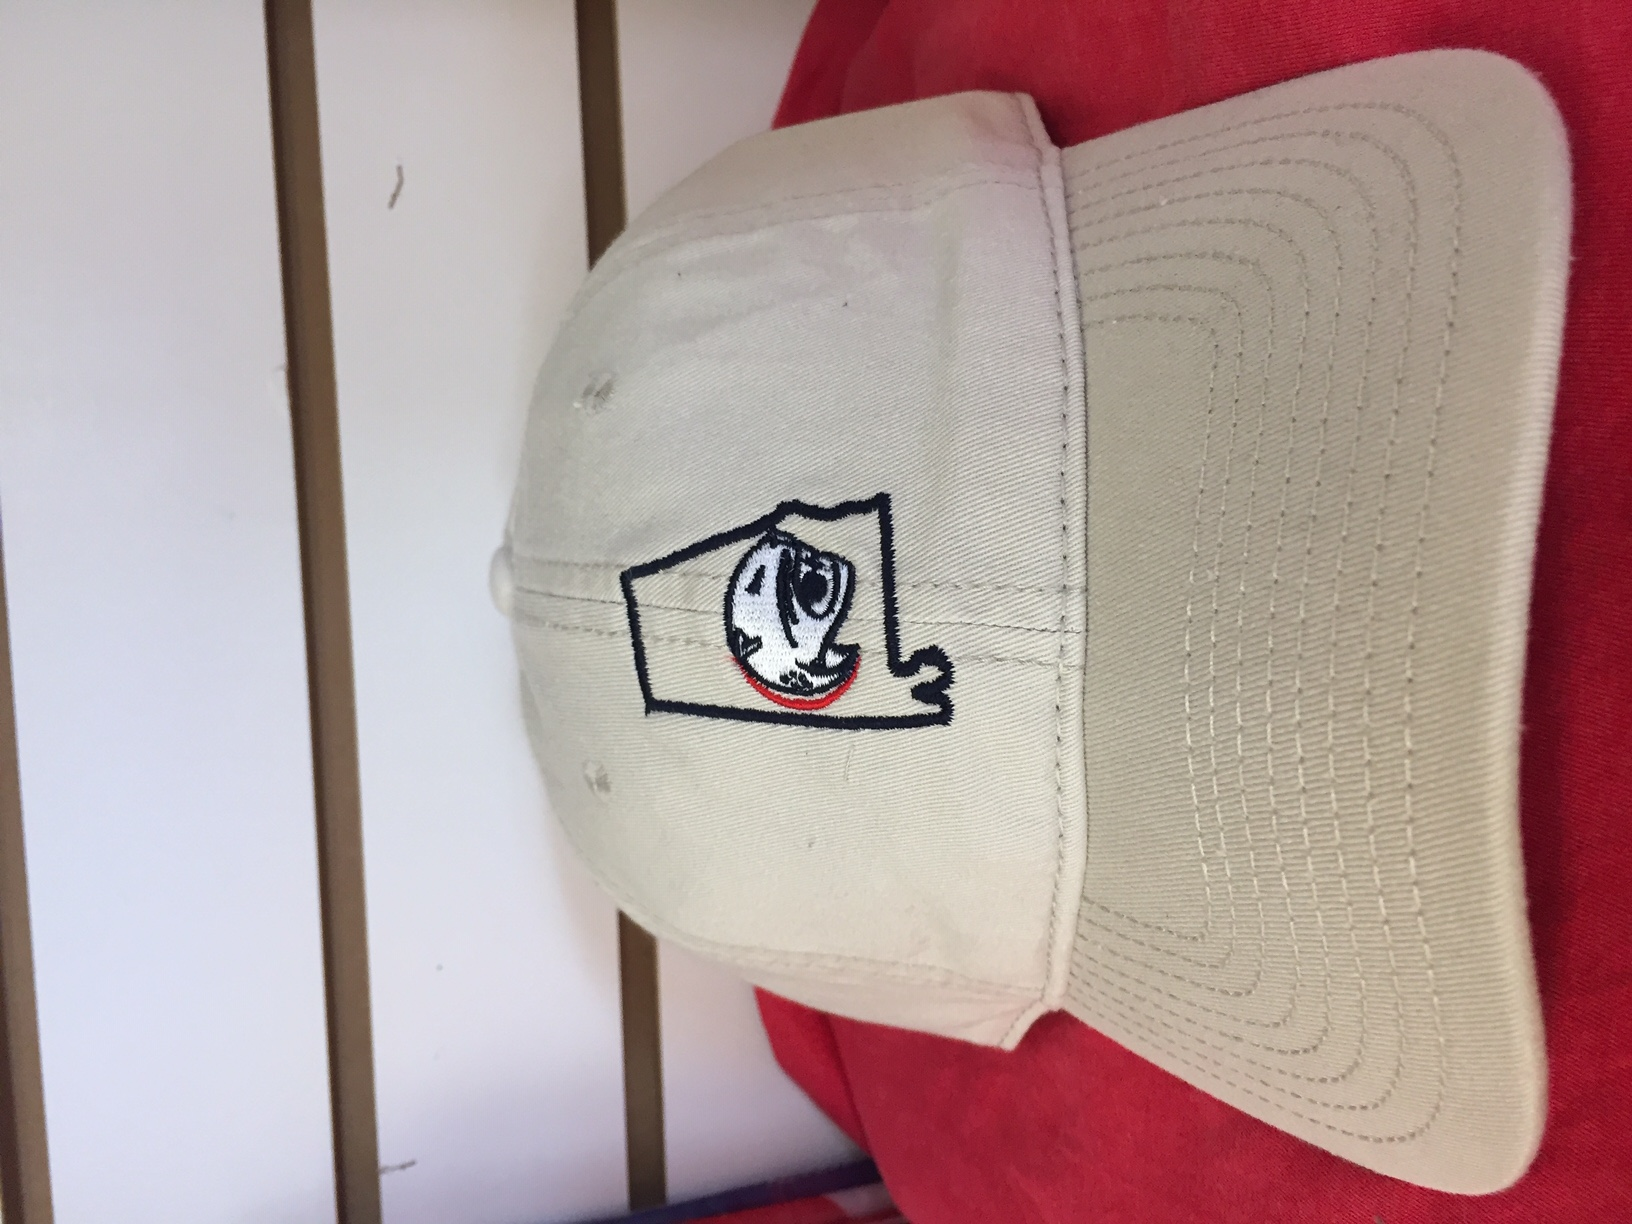 State outline with jag logo hat